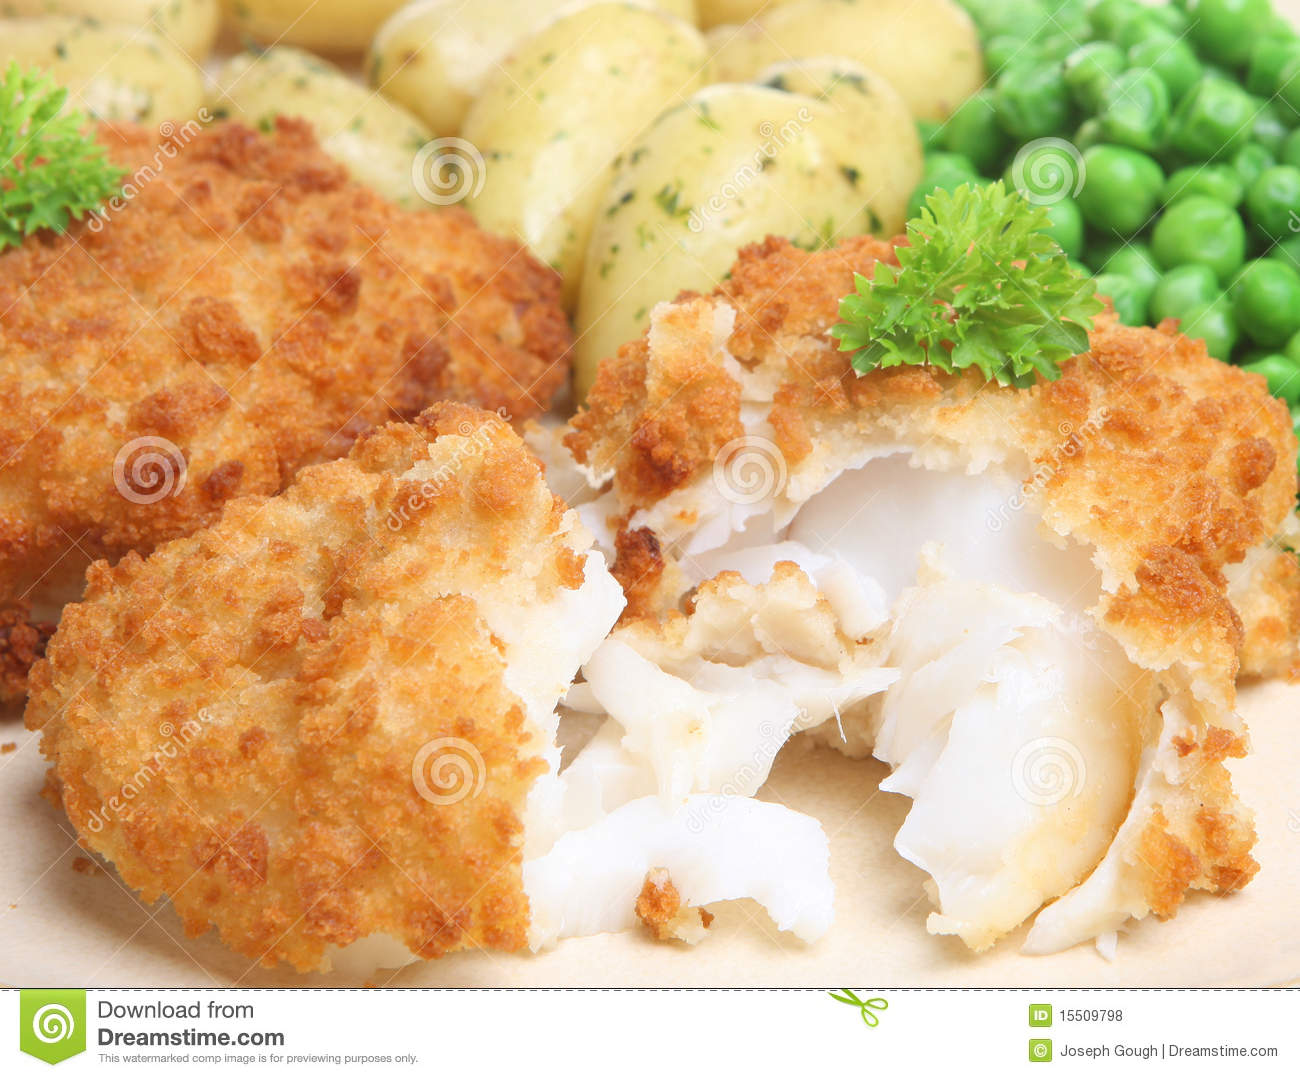 Cod fish fillet meal royalty free stock photos image for Cod fish fillet